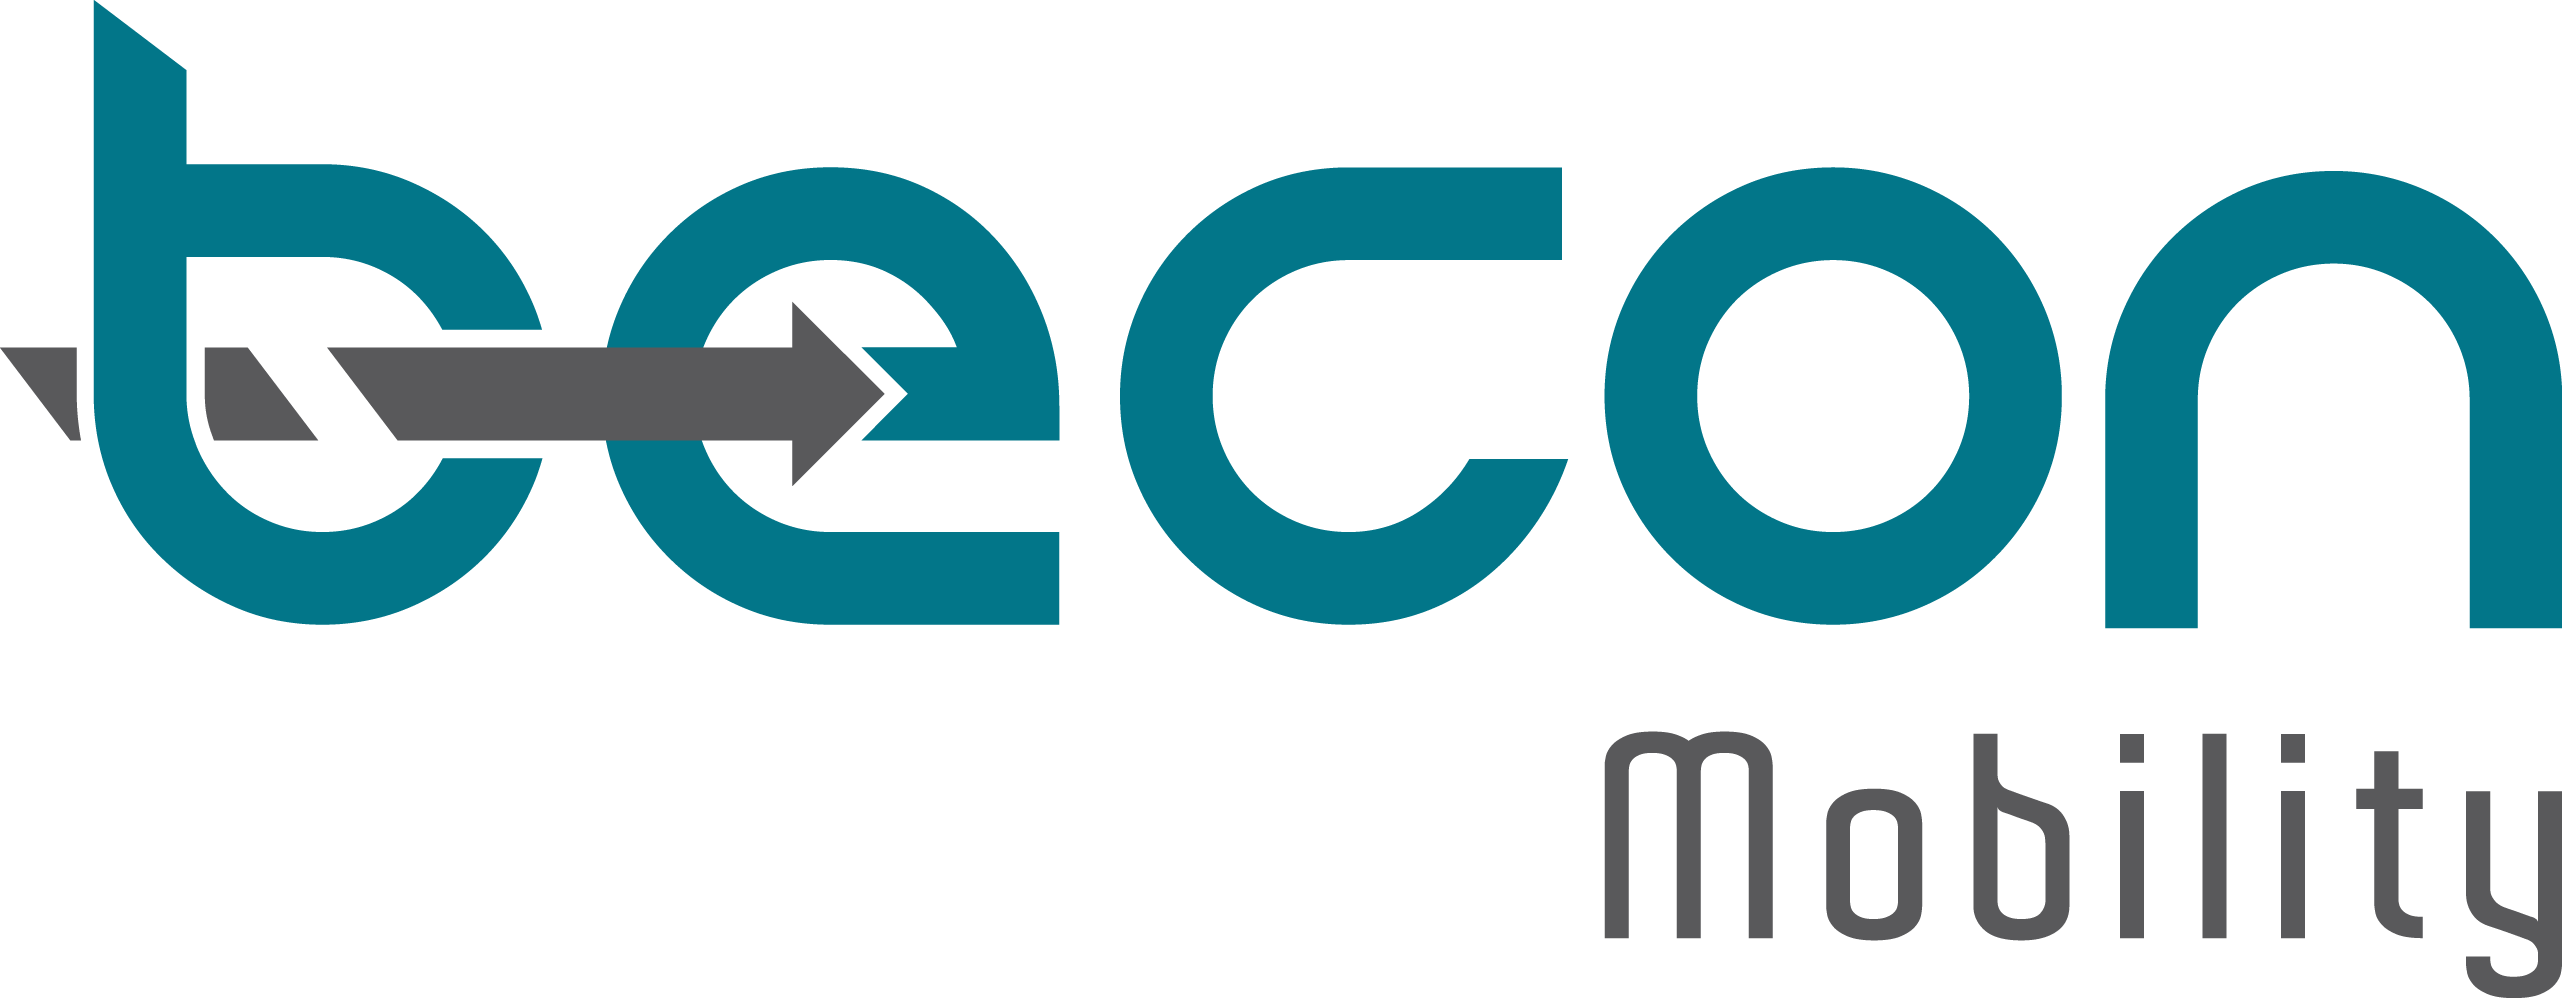 Becon Mobility